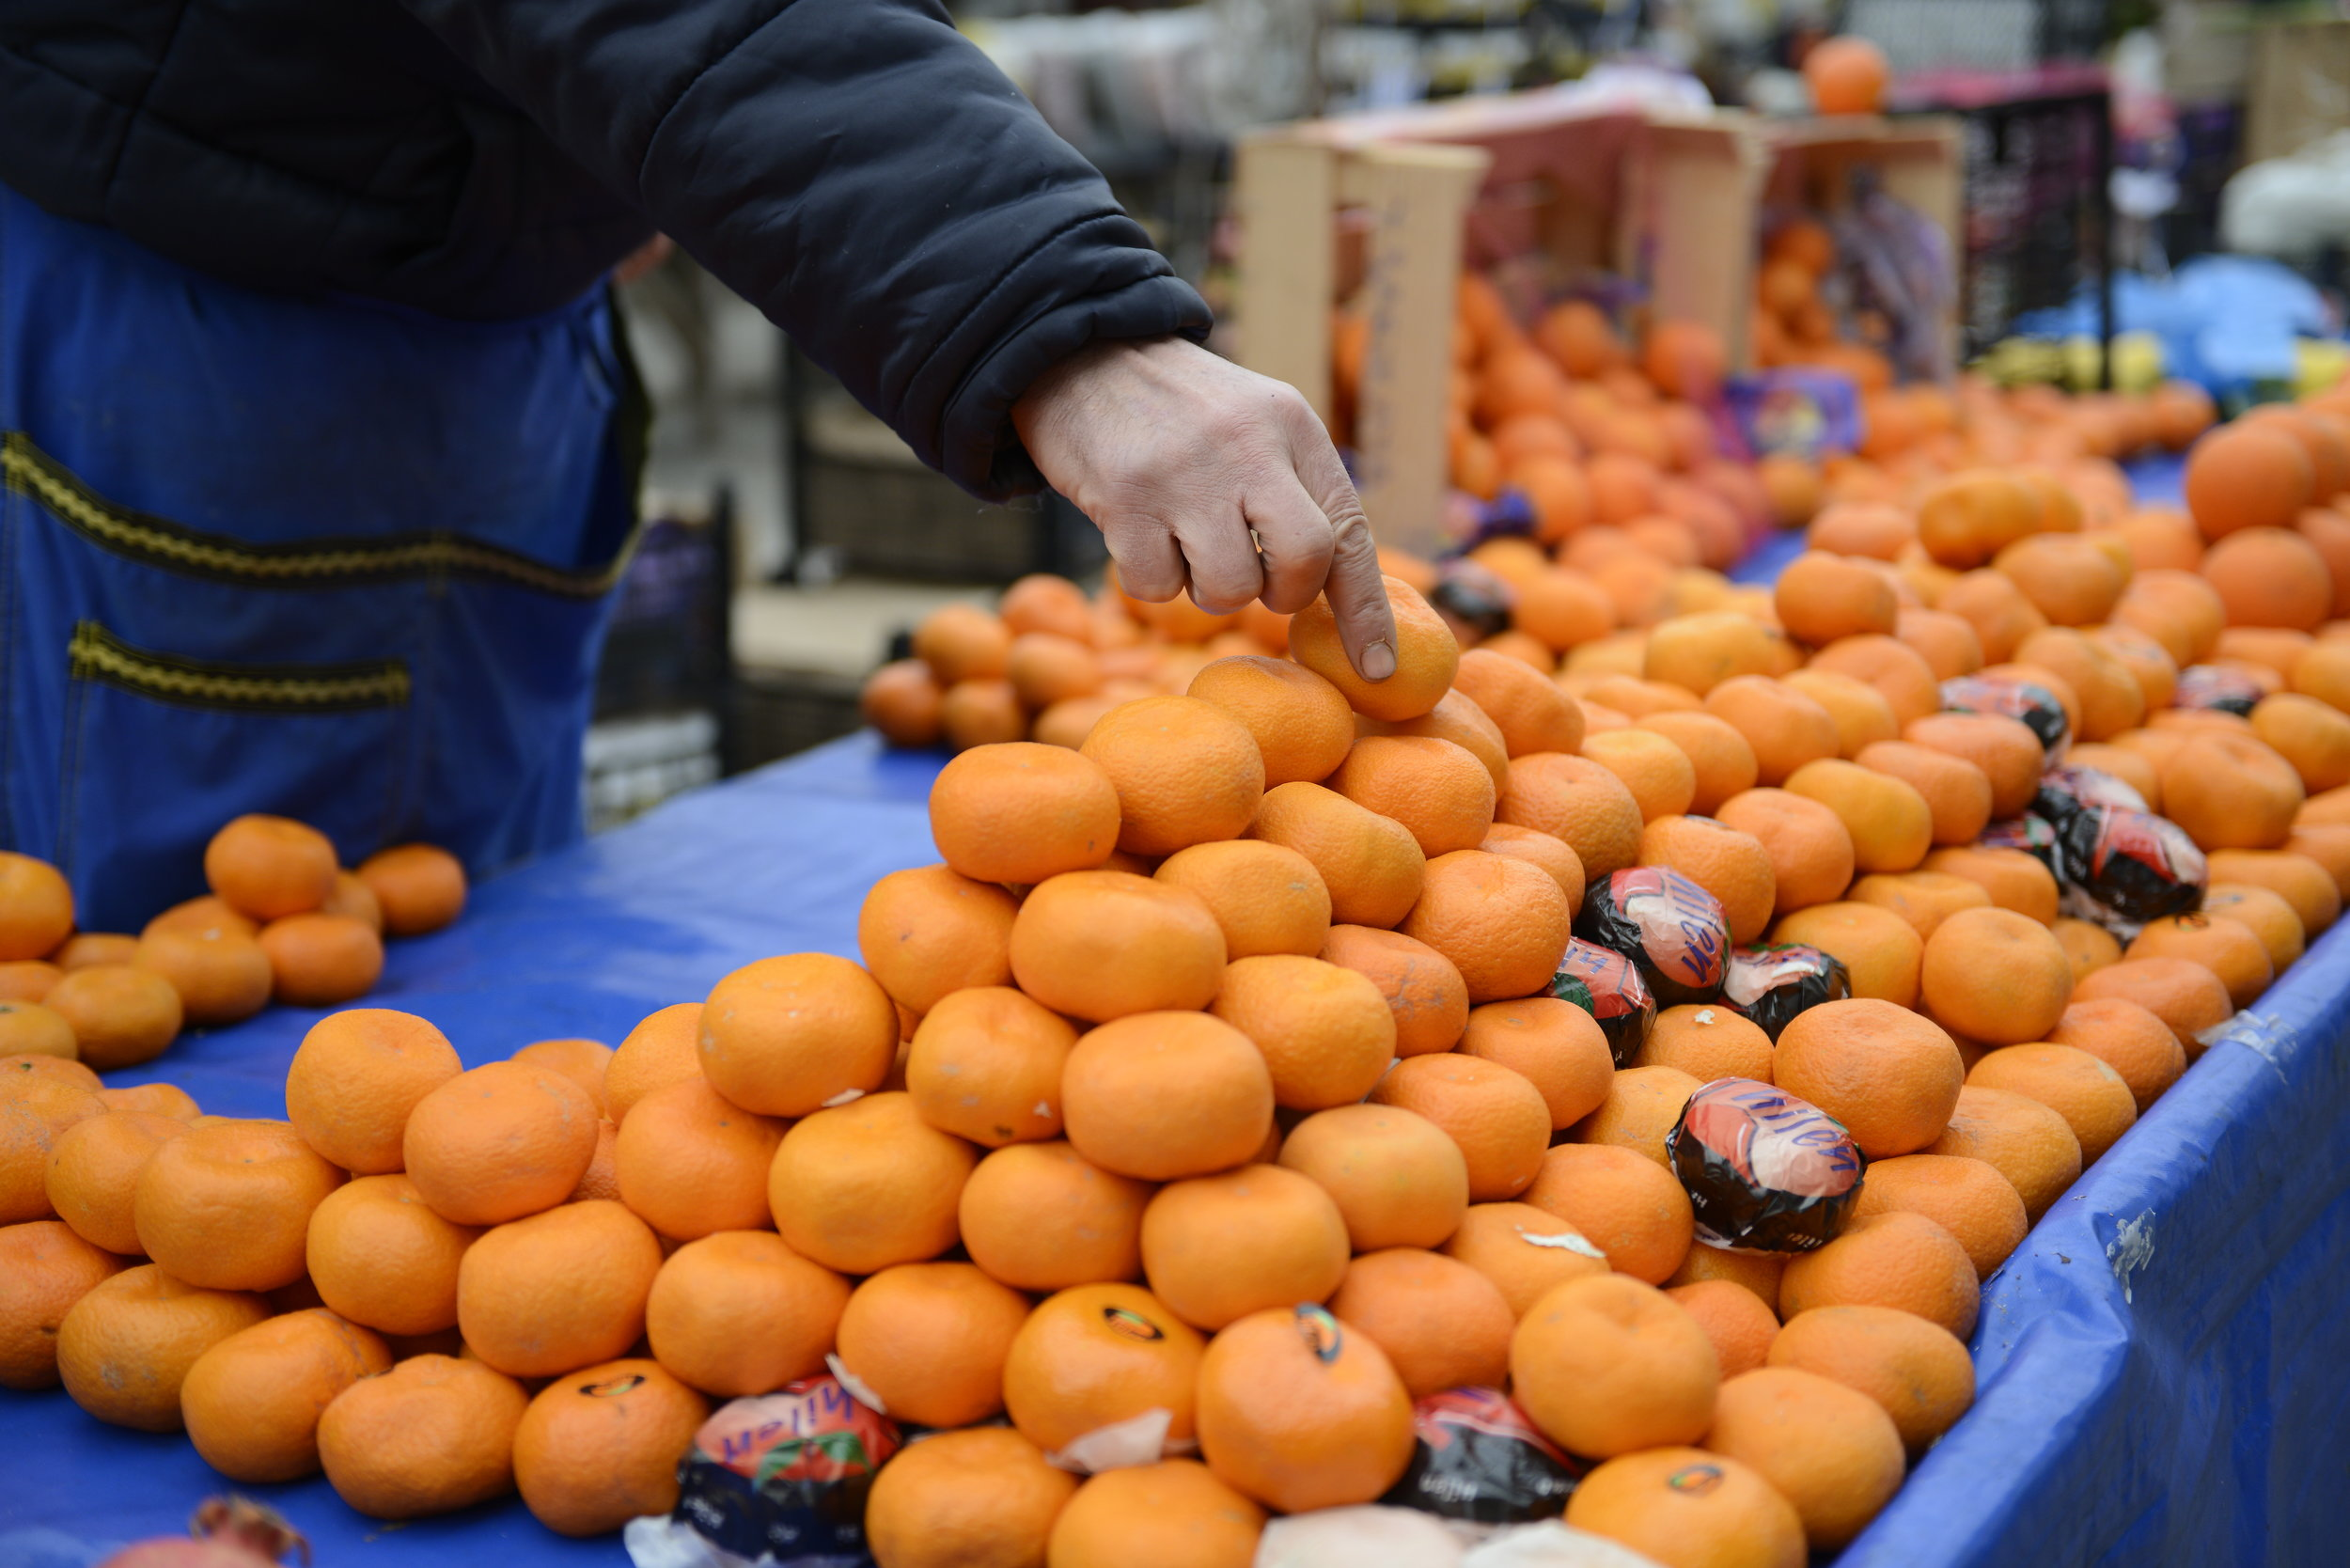 produce vendors arrive early to prepare perfect displays